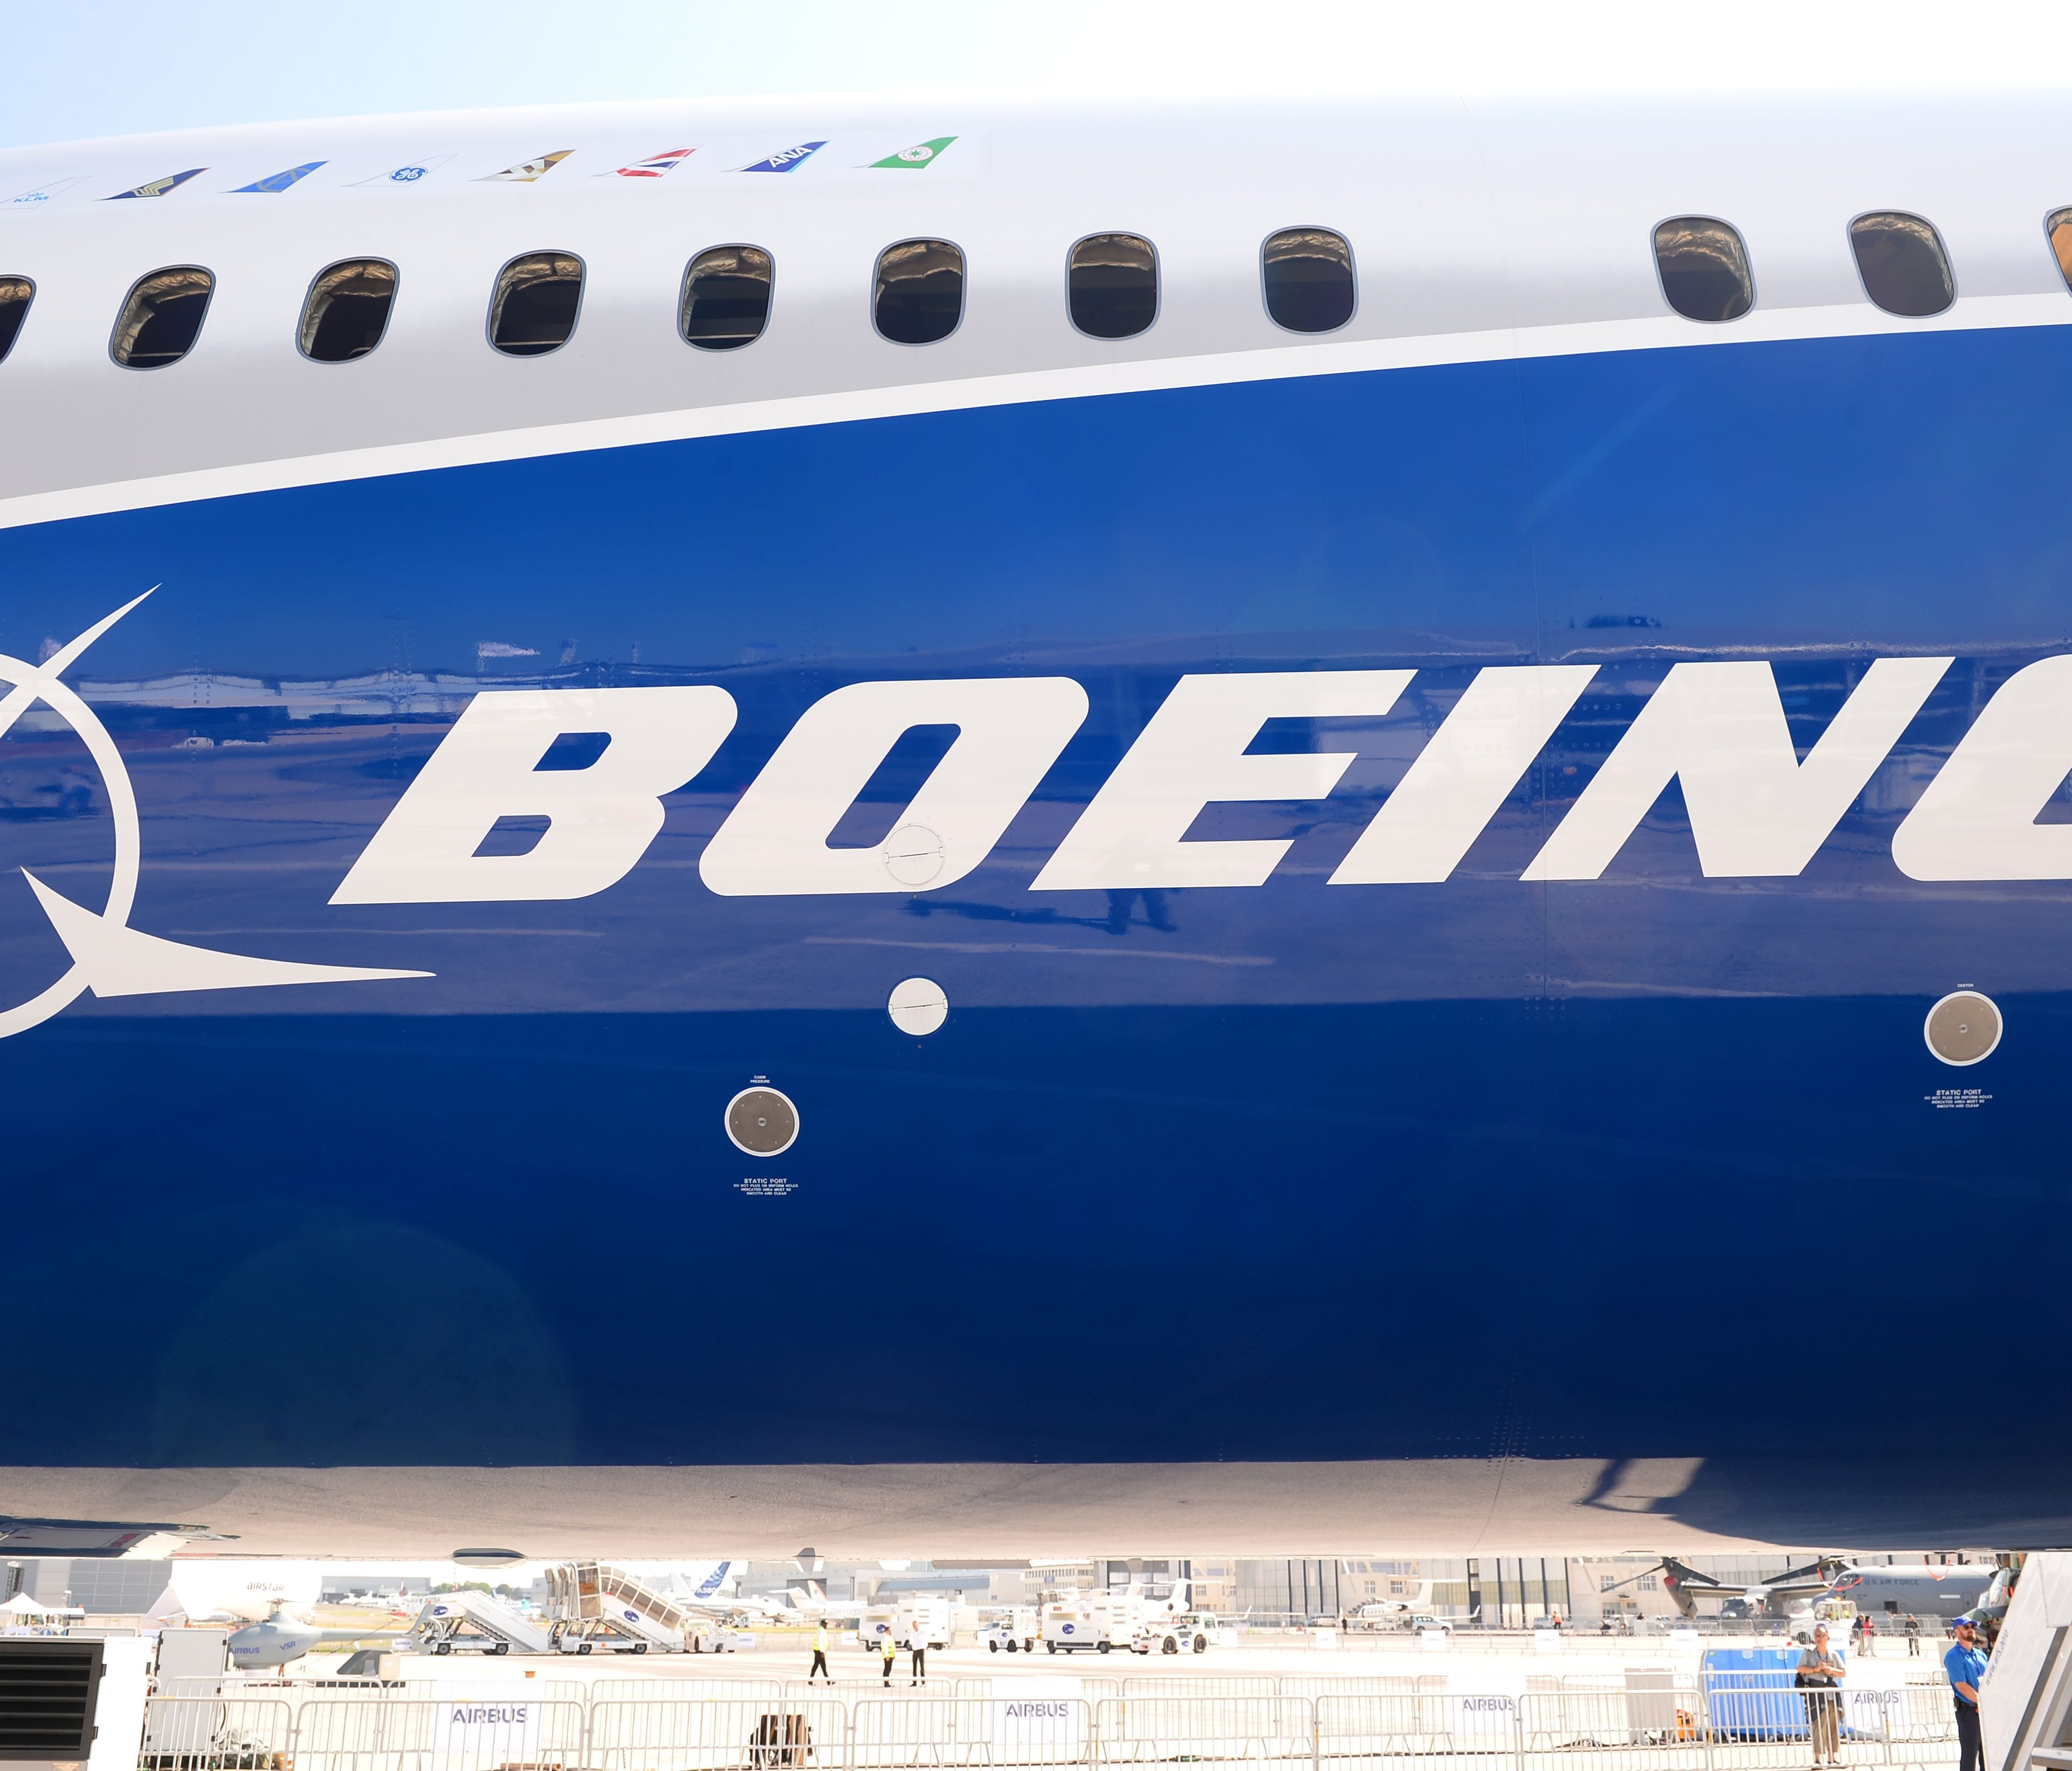 (FILES) This file photo taken on June 18, 2017 shows the Boeing logo on the fuselage of a Boeing 787-10 Dreamliner test plane presented on the Tarmac of Le Bourget.  Emirates Airlines on November 12, 2017, agreed to purchase 40 Boeing 787-10 Dreamline